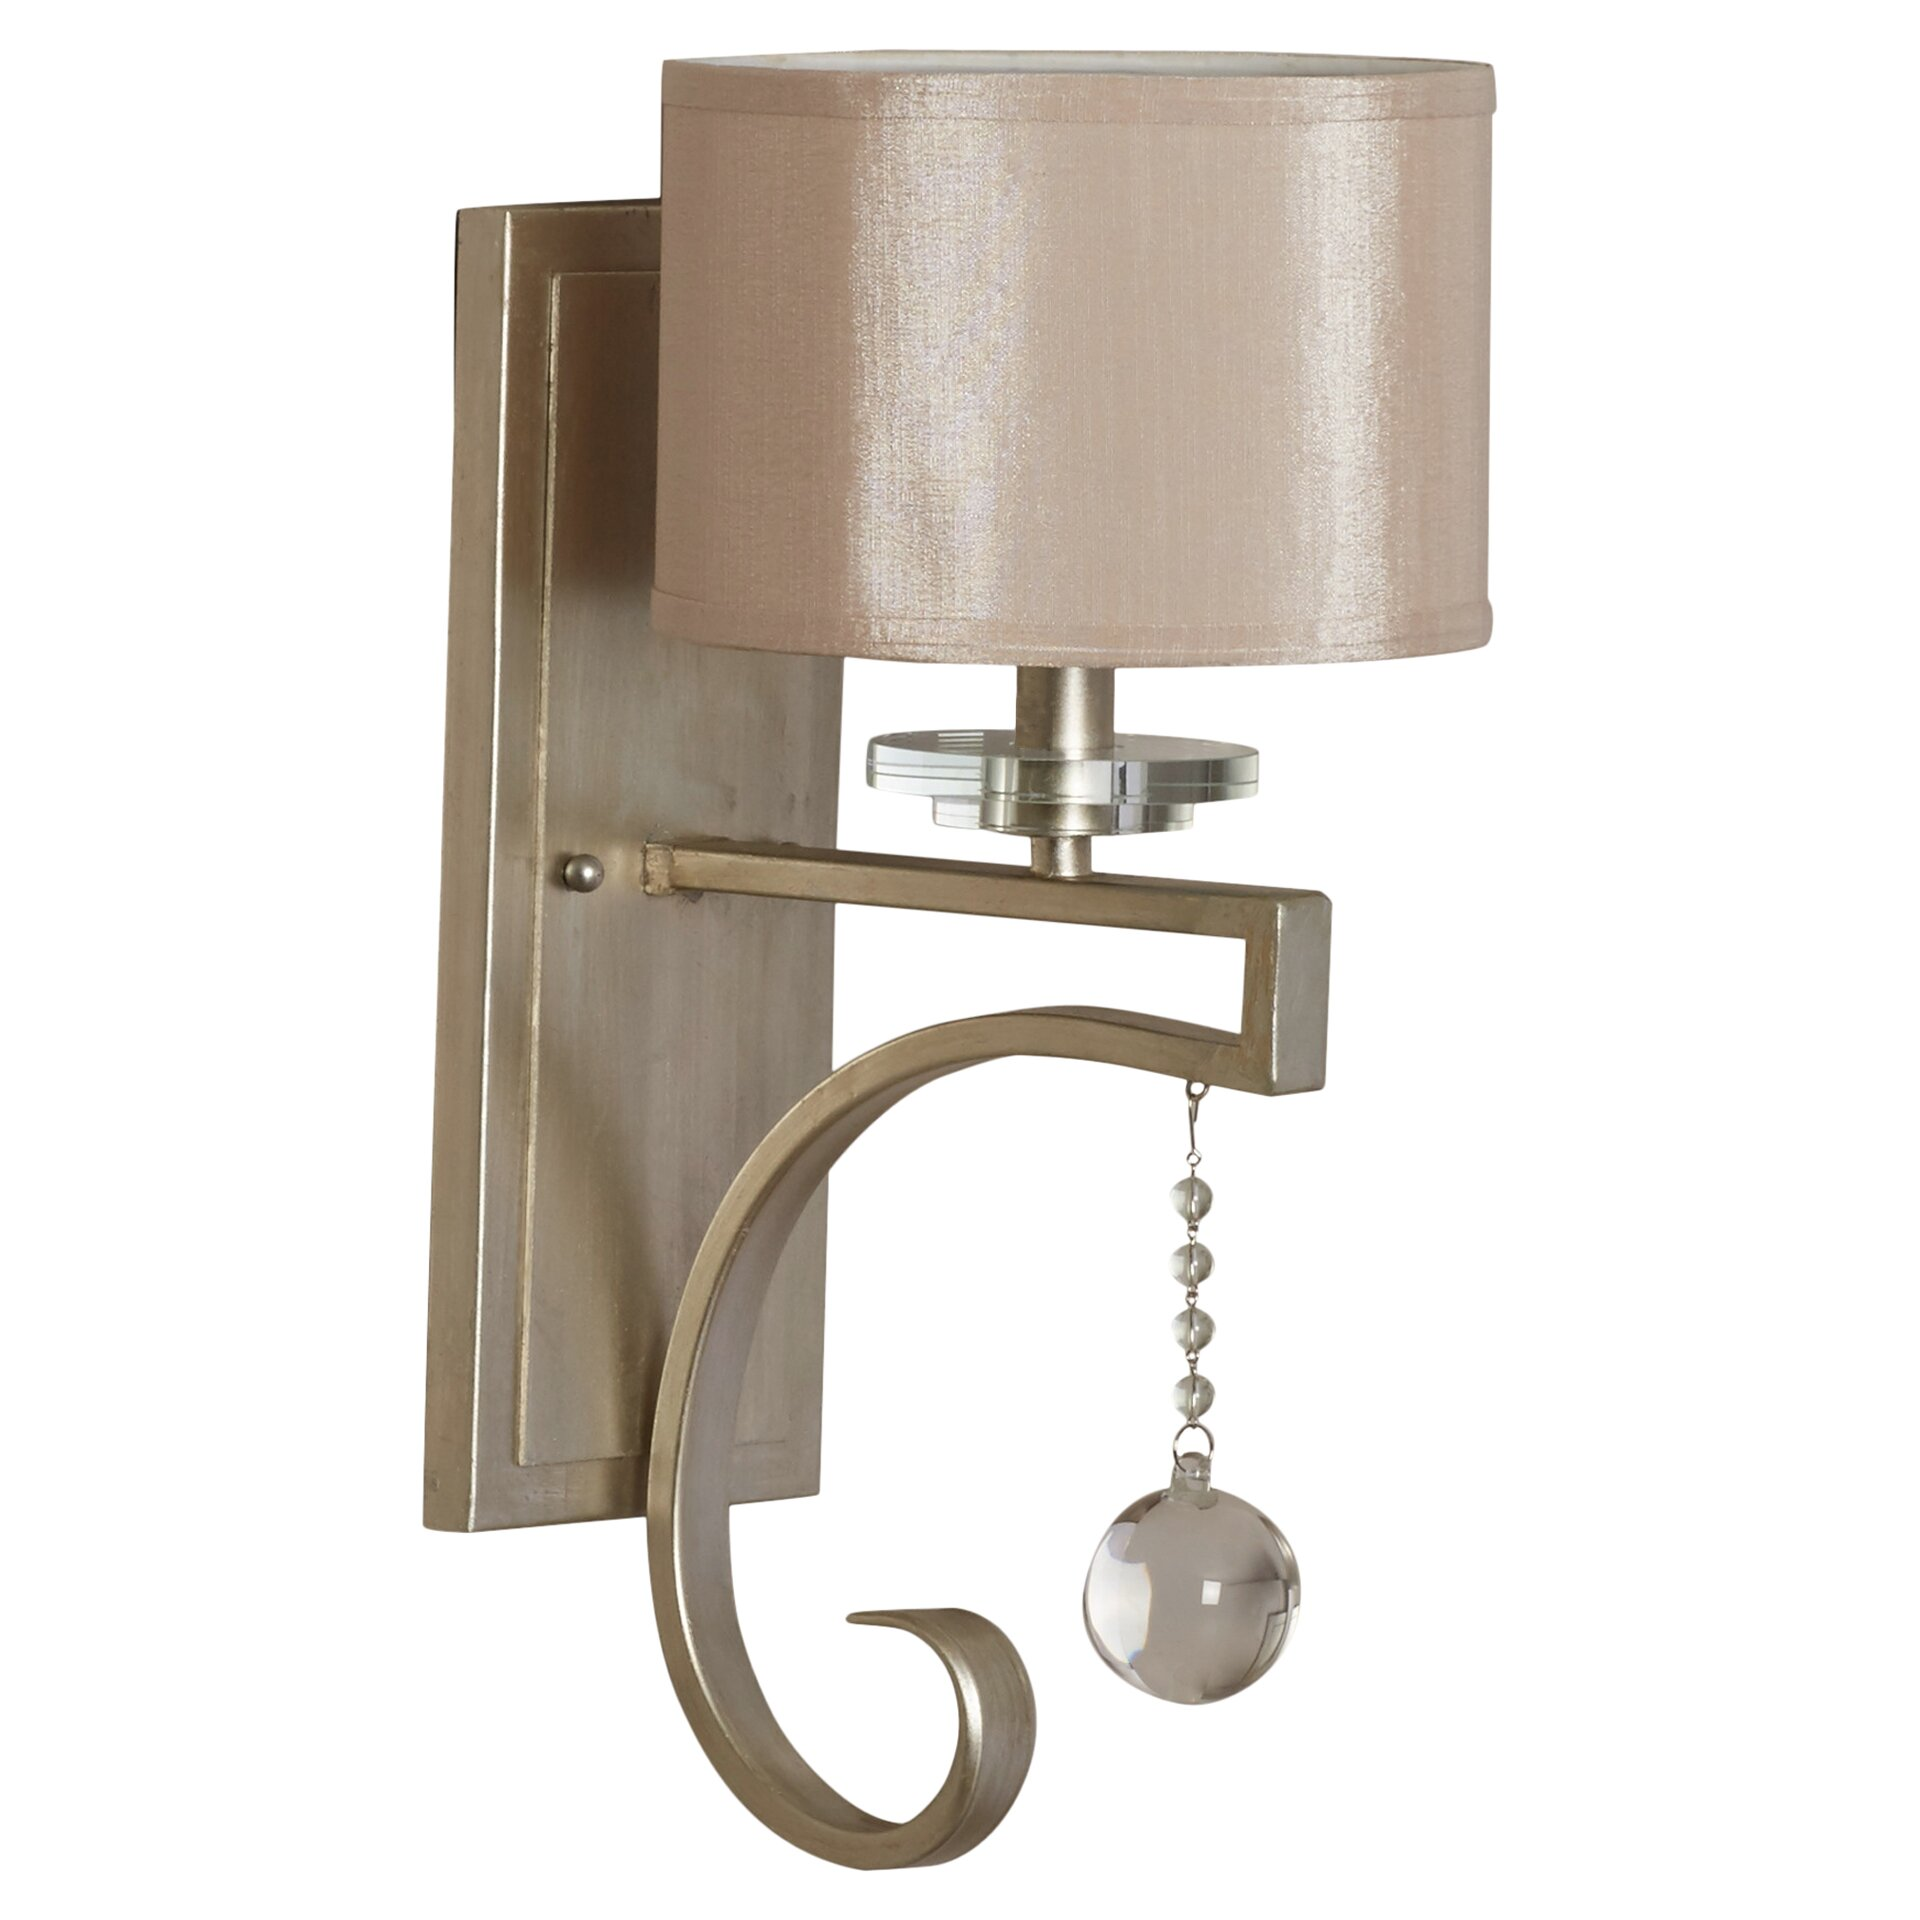 Wall Sconces At Wayfair : House of Hampton Becquere 1 Light Wall Sconce & Reviews Wayfair